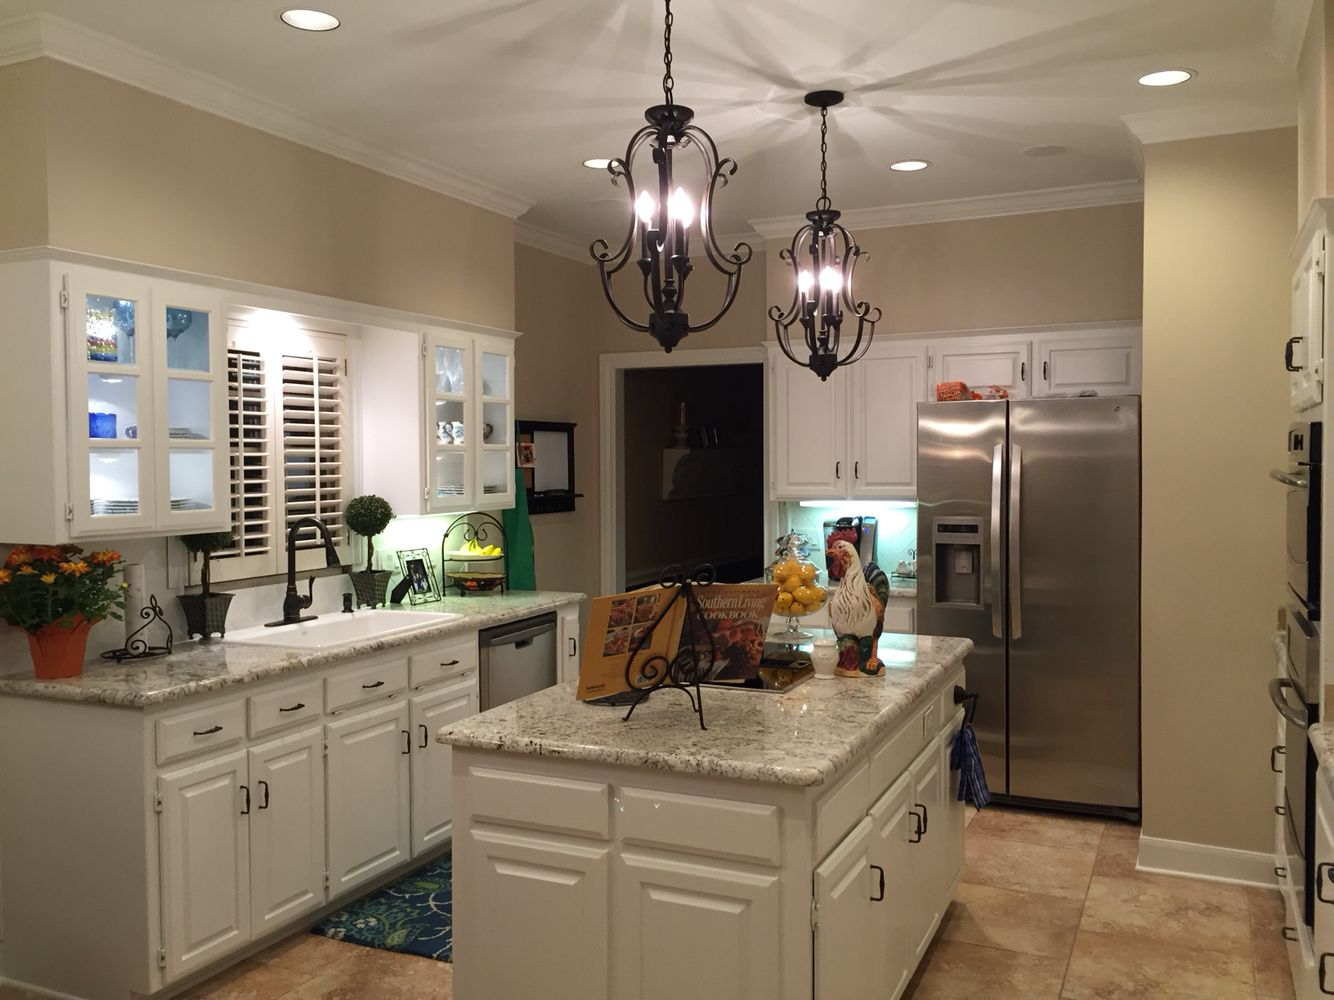 sherwin williams paint for kitchen cabinets white marble countertops spring granite